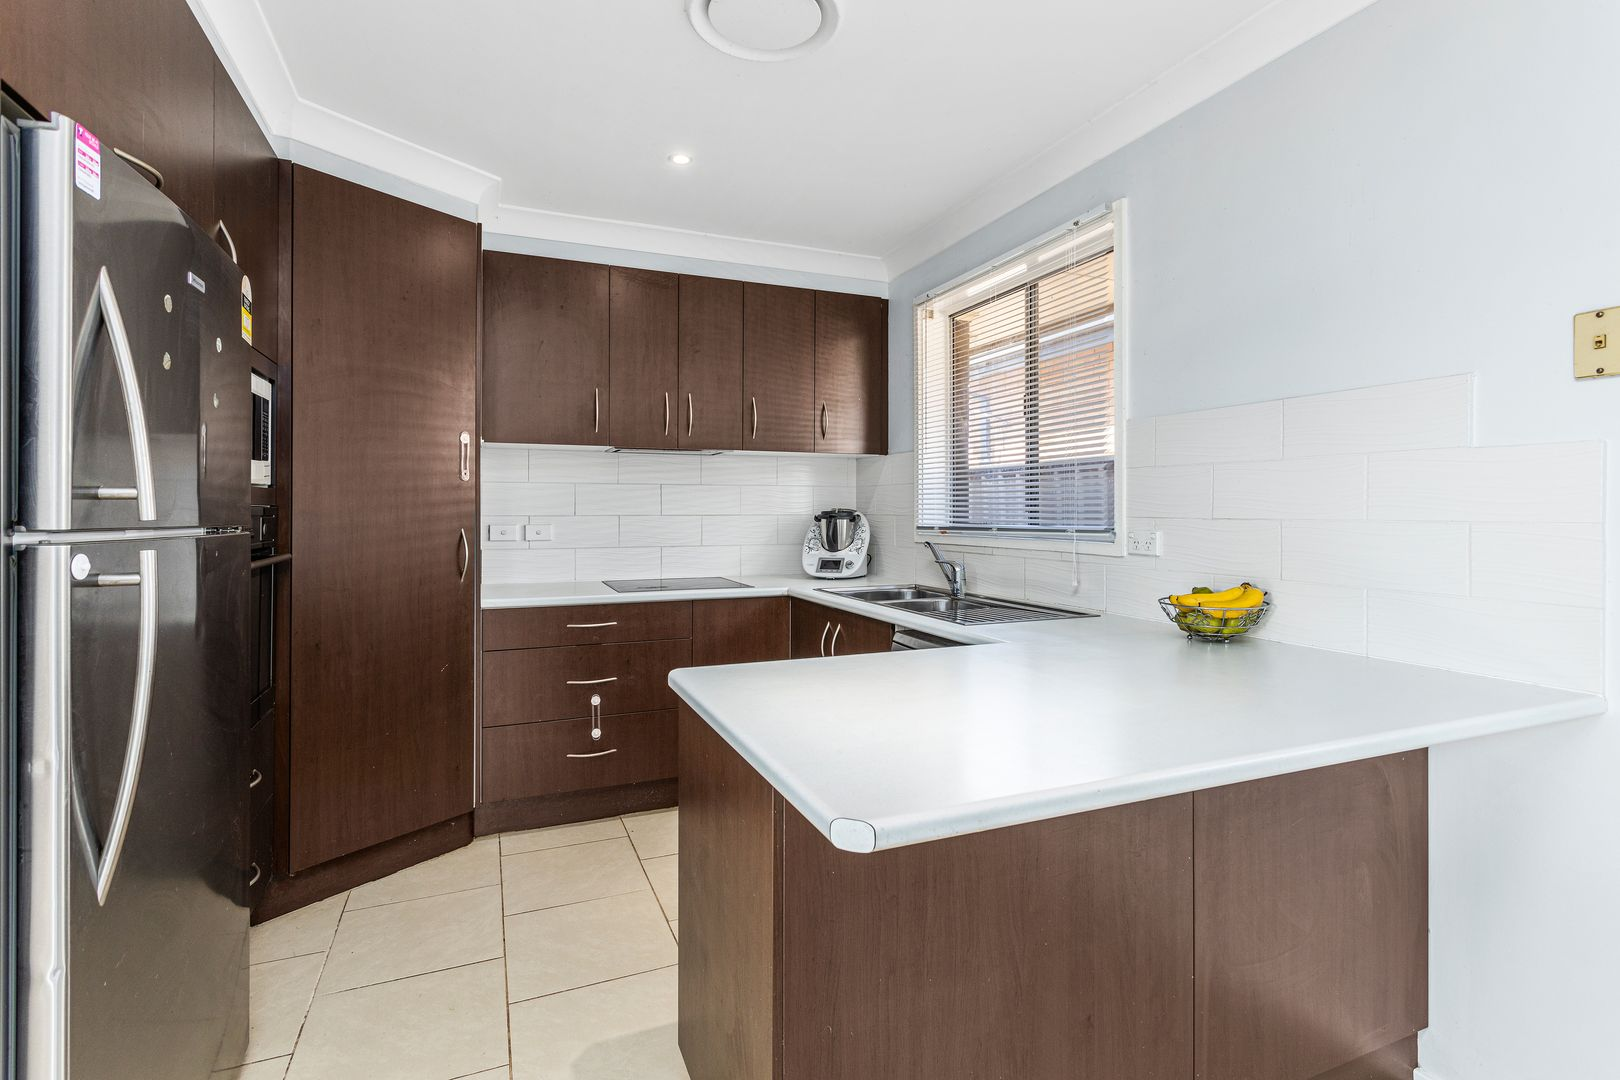 73 Captain Cook Drive, Barrack Heights NSW 2528, Image 2